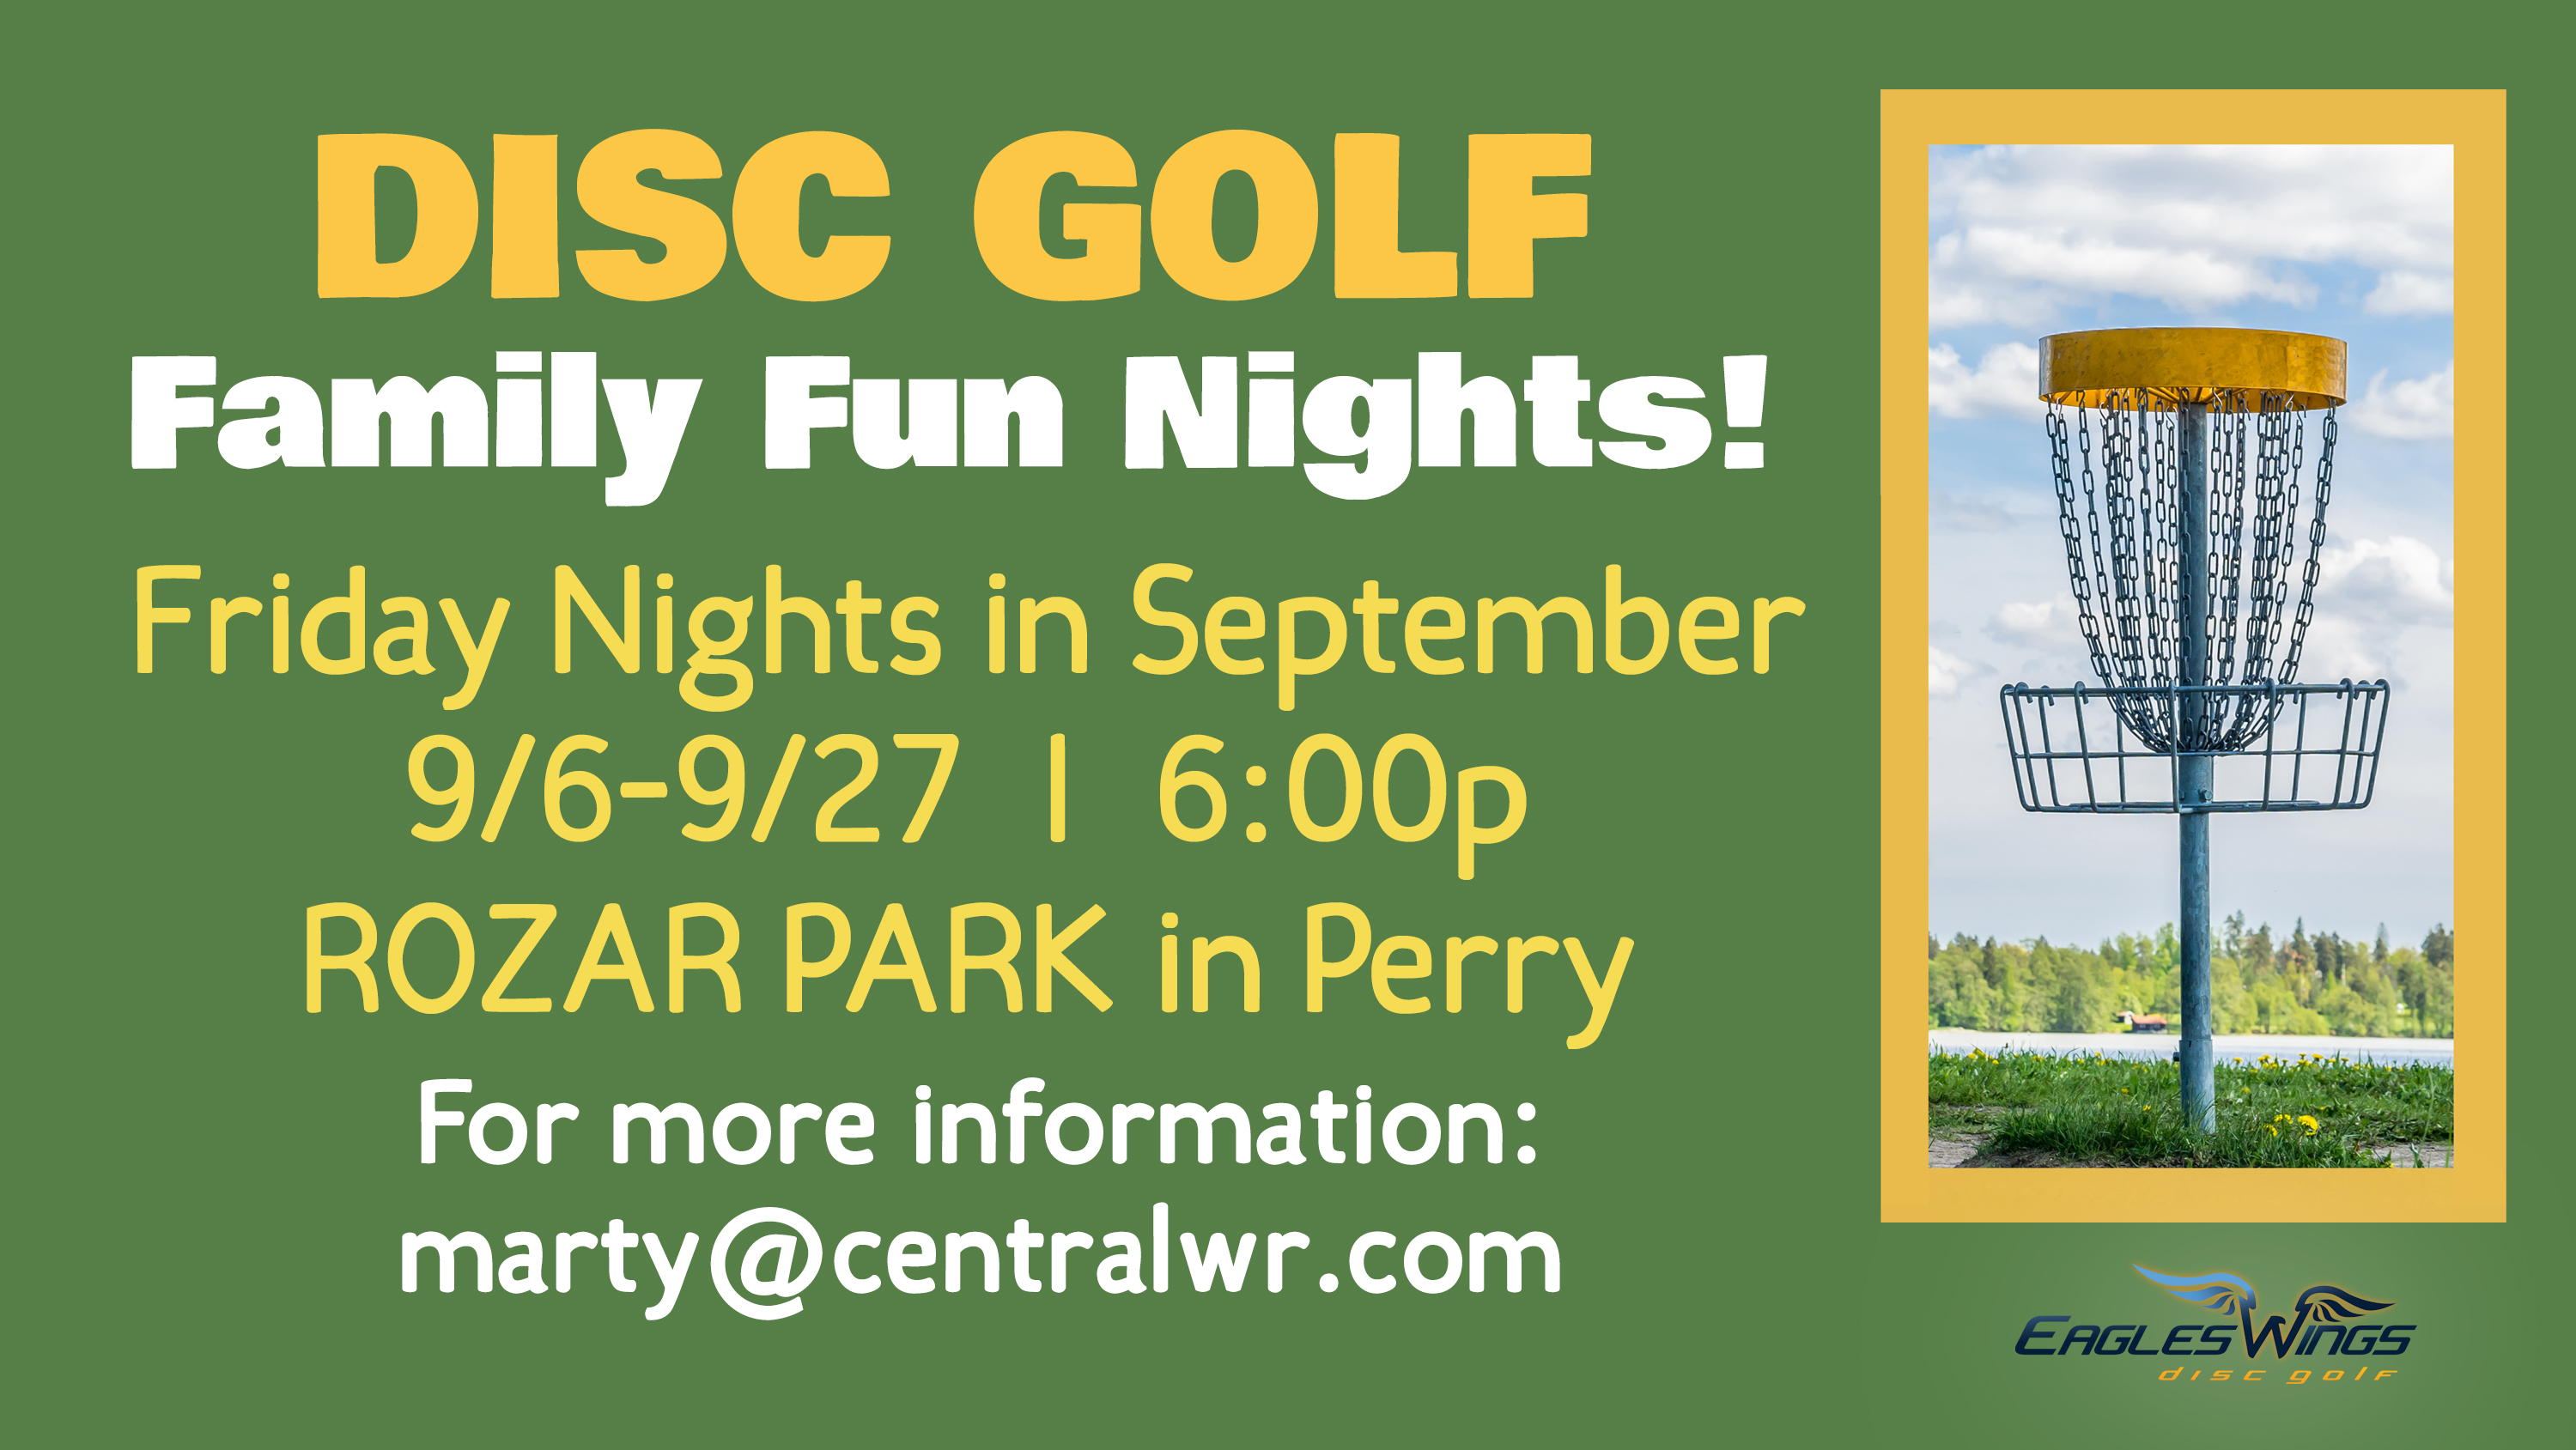 7.5  Disc Golf Family Fun Nights ad 2